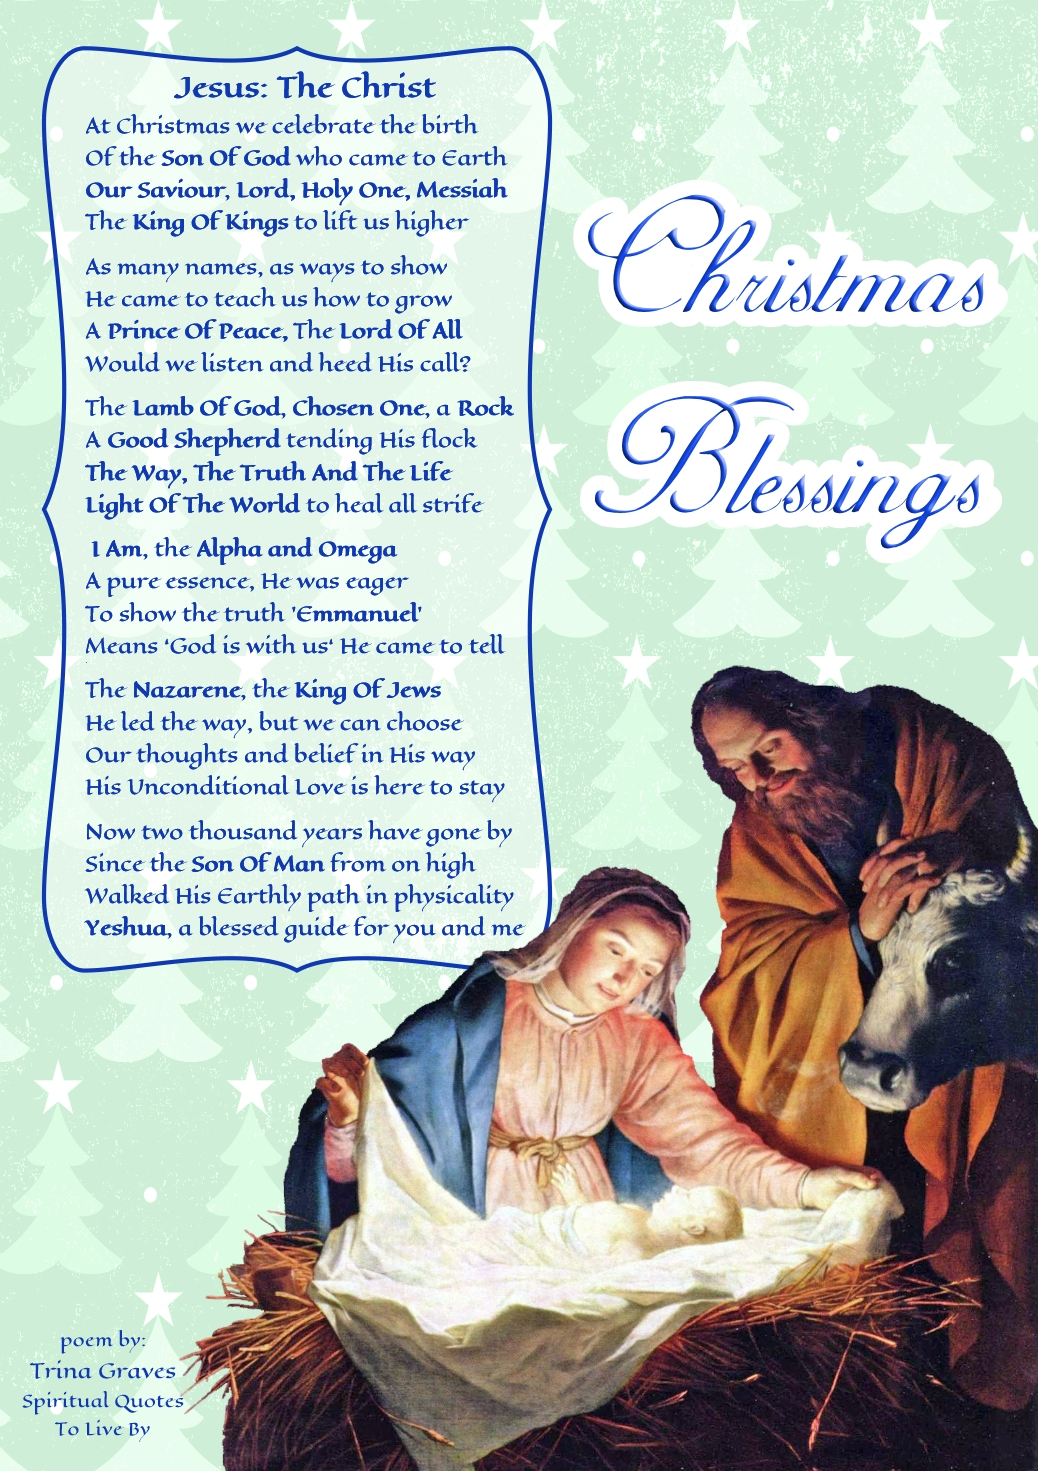 Jesus: The Christ - inspirational Christmas poem by Trina Graves of Spiritual Quotes To Live By